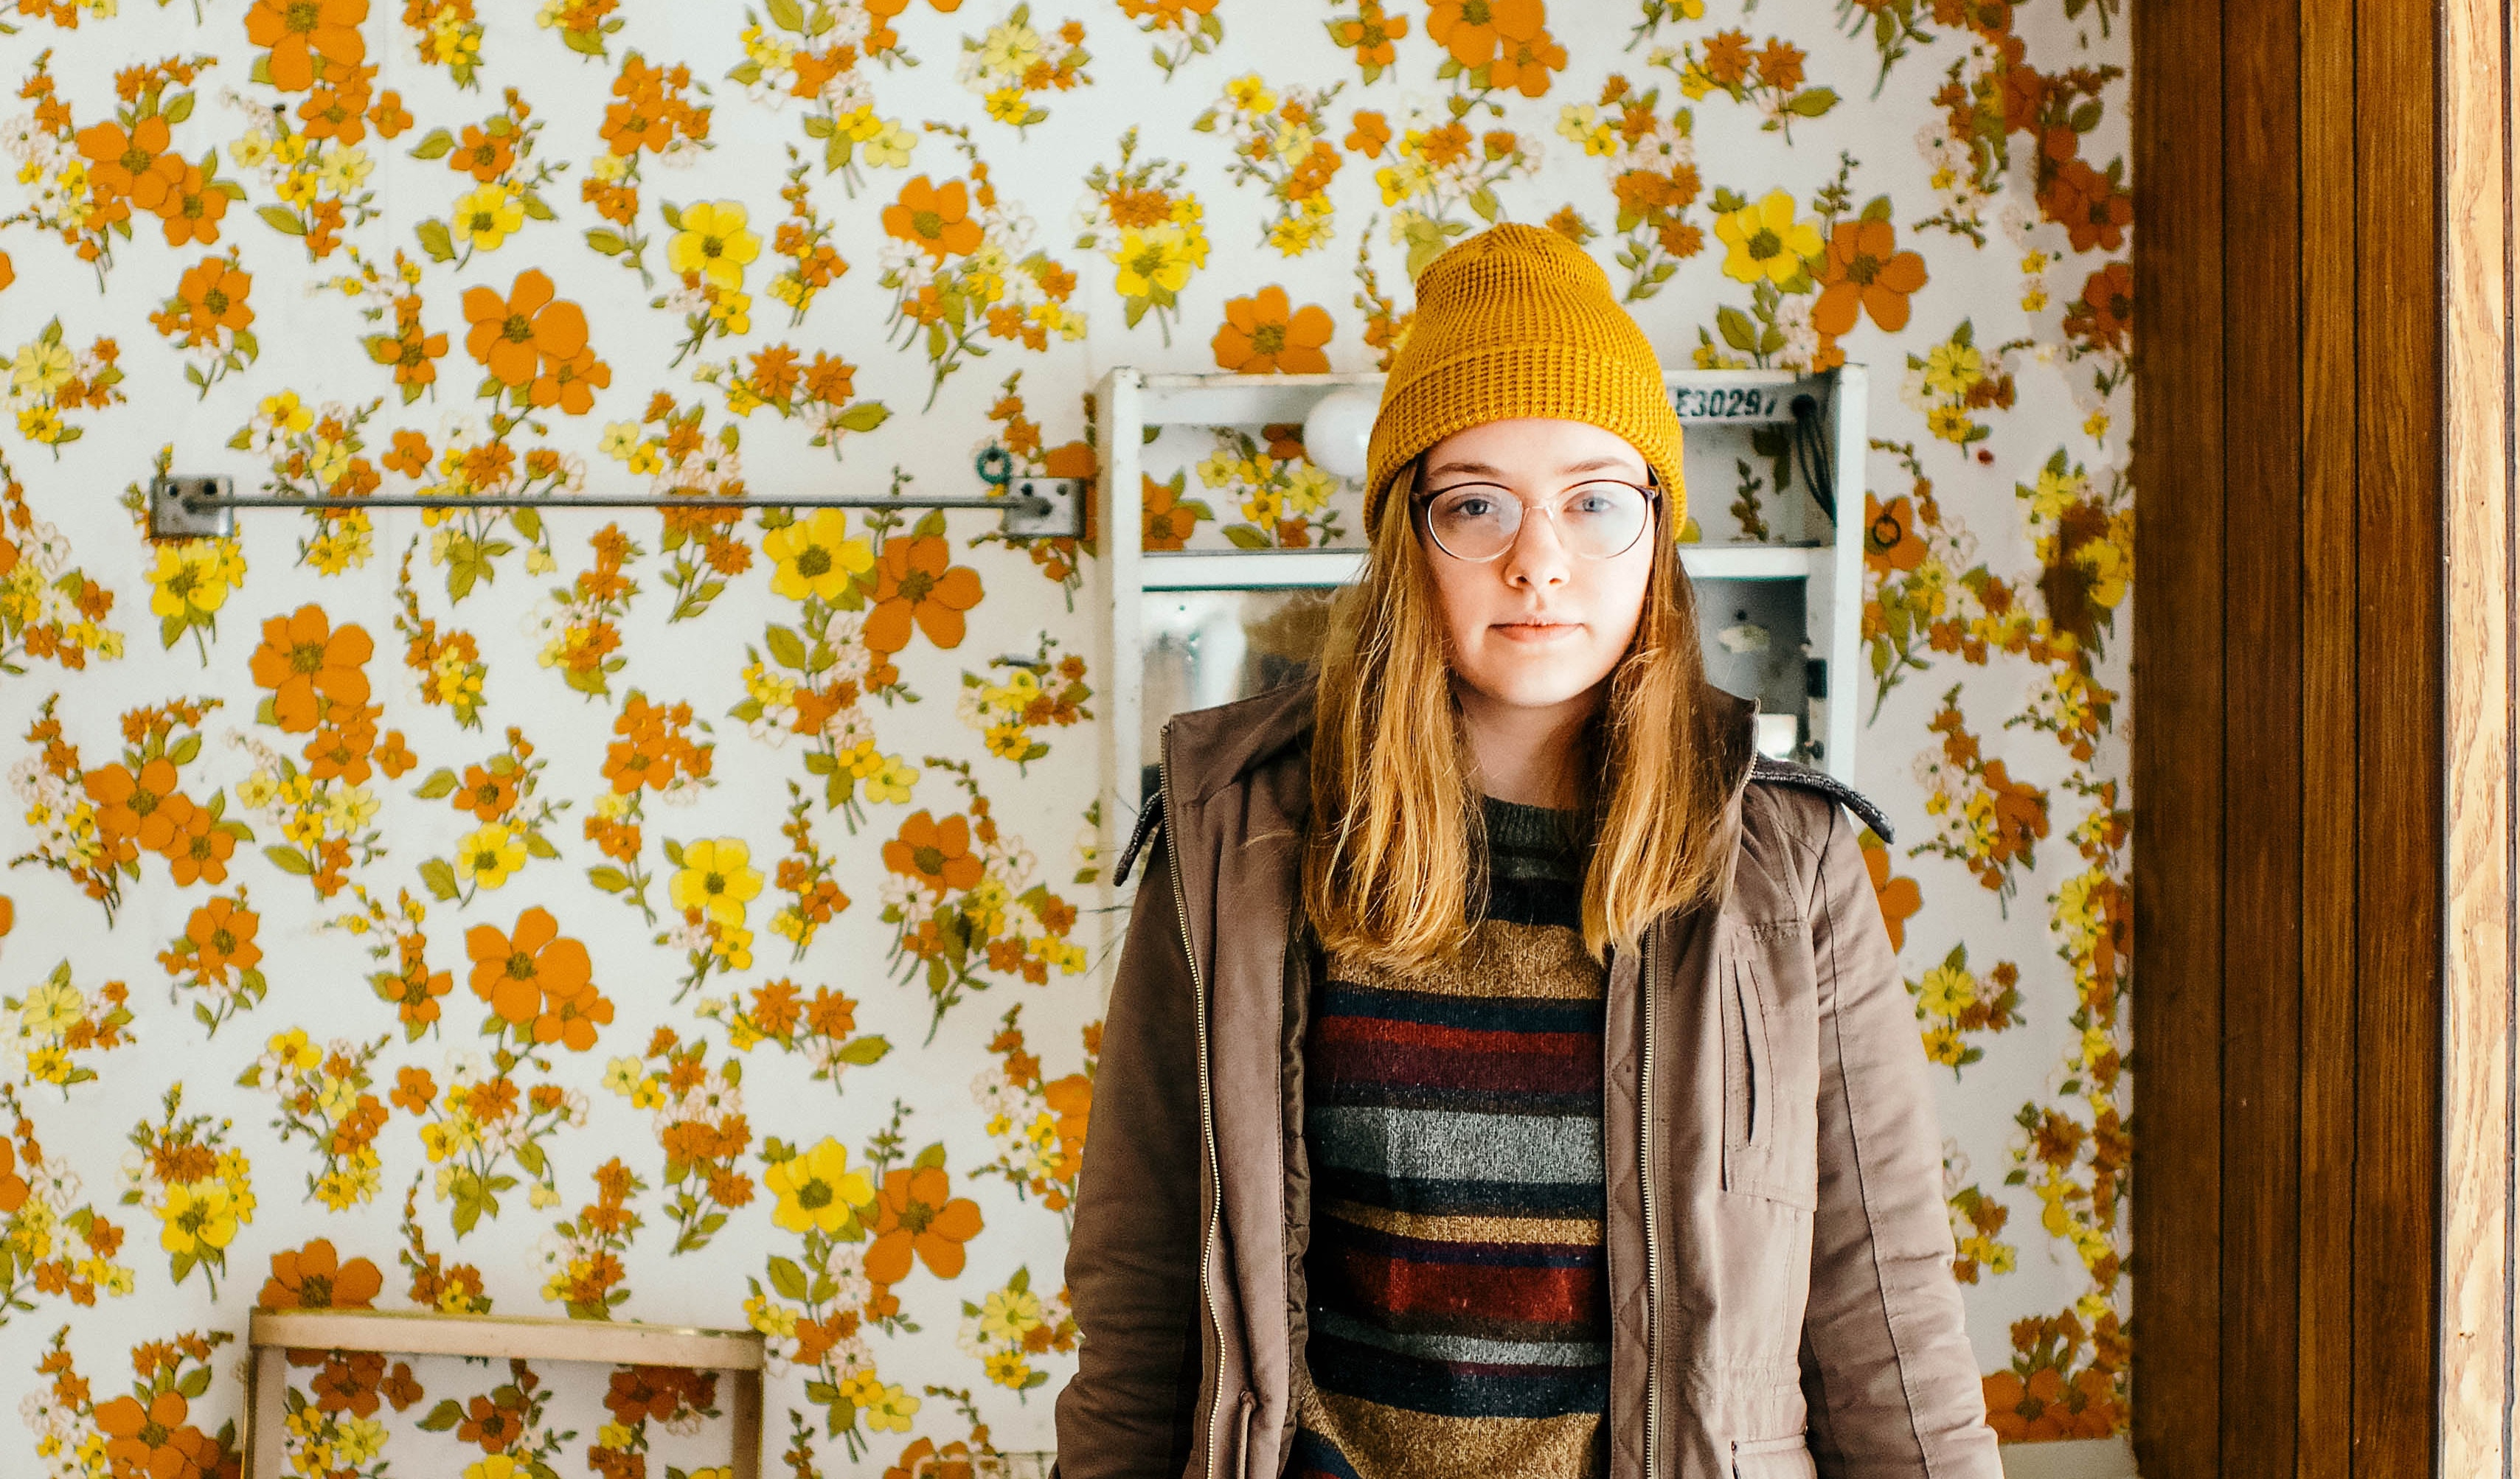 Woman standing in bathroom with '70s décor